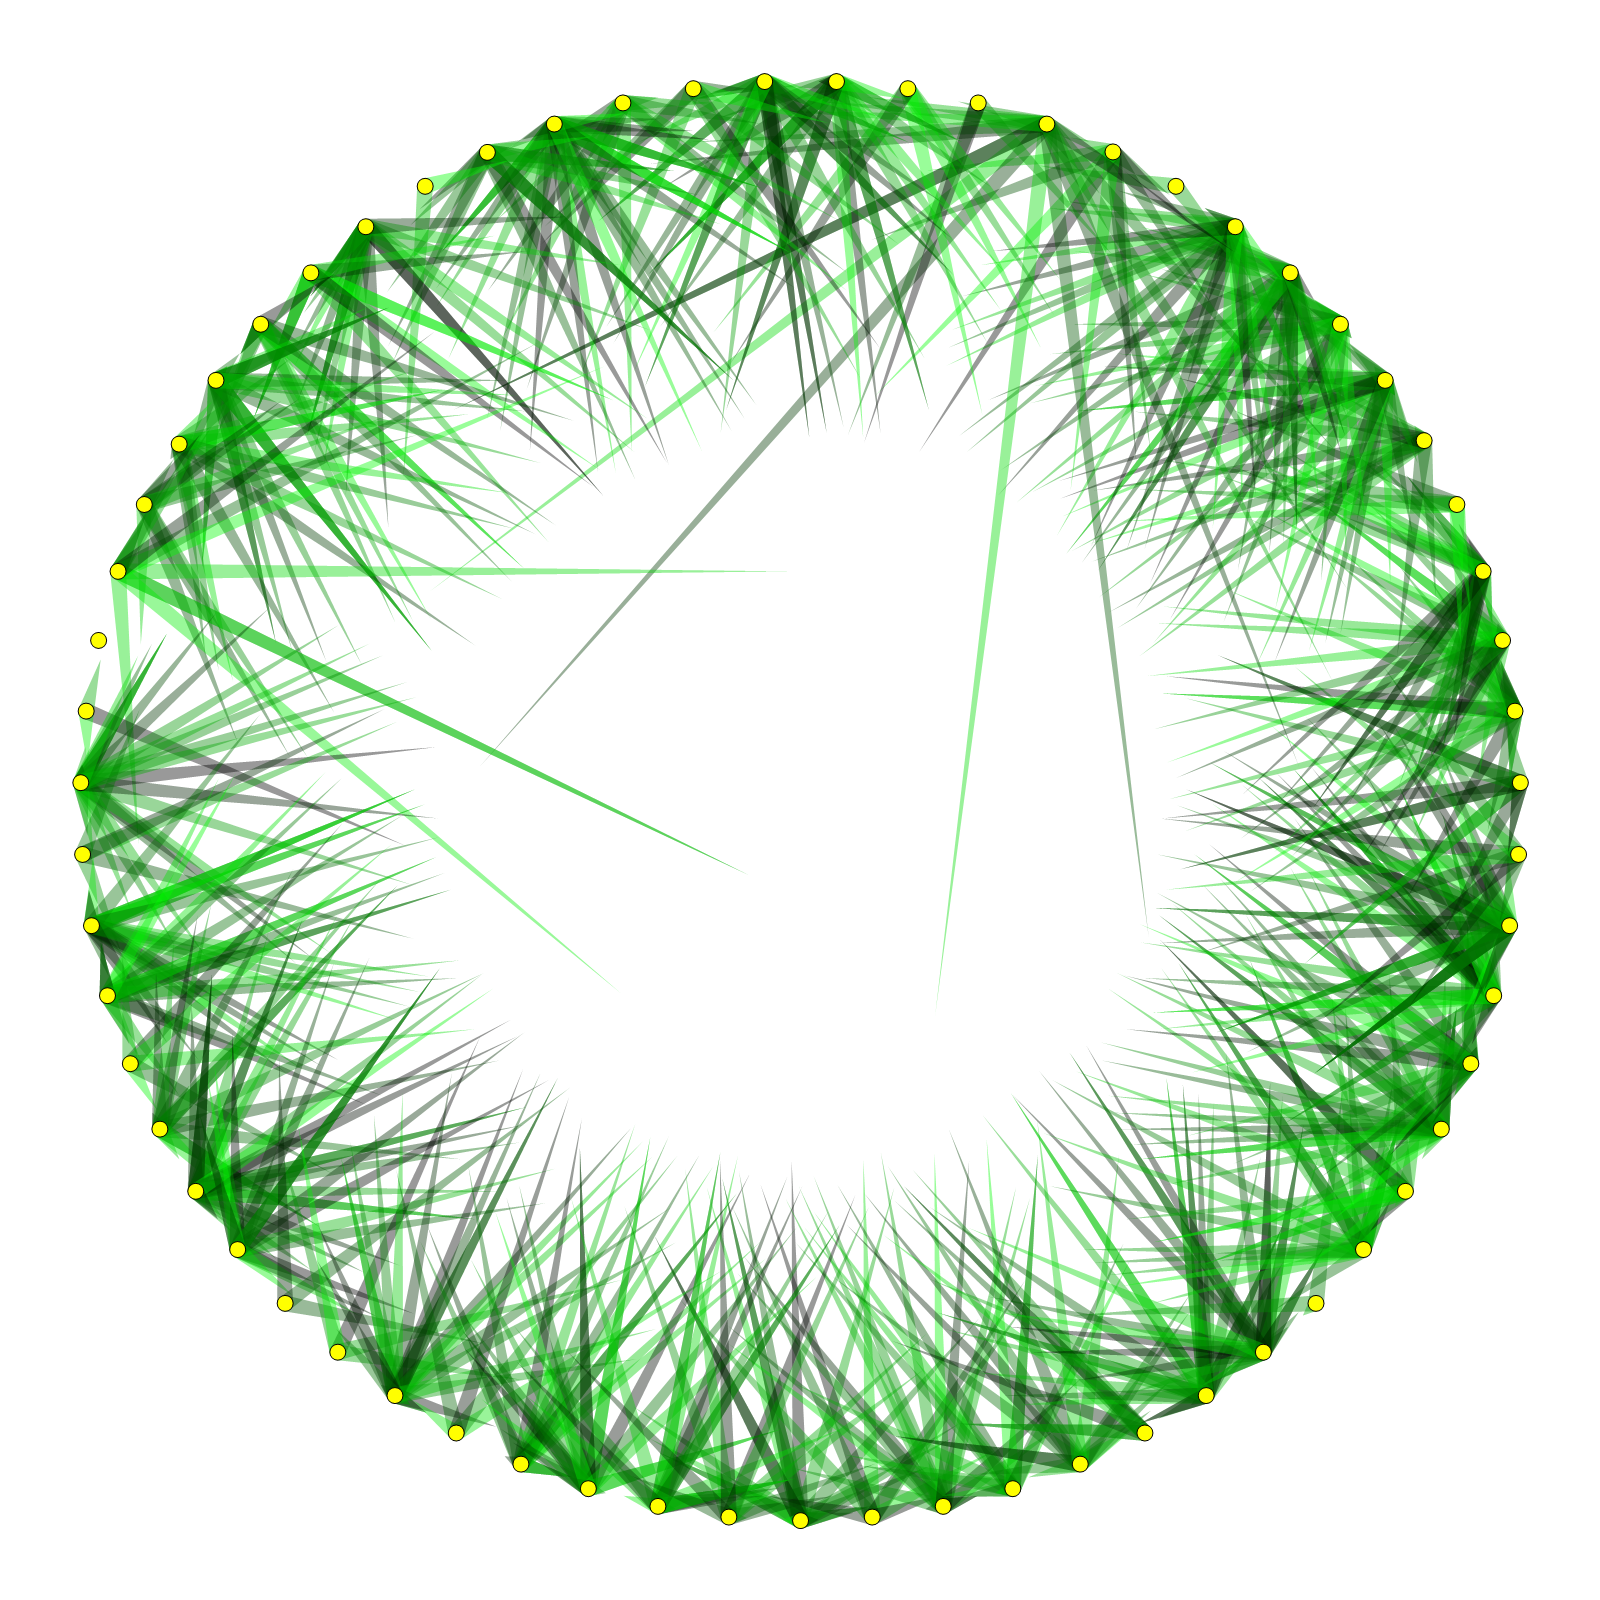 Partially drawn links in a radial layout